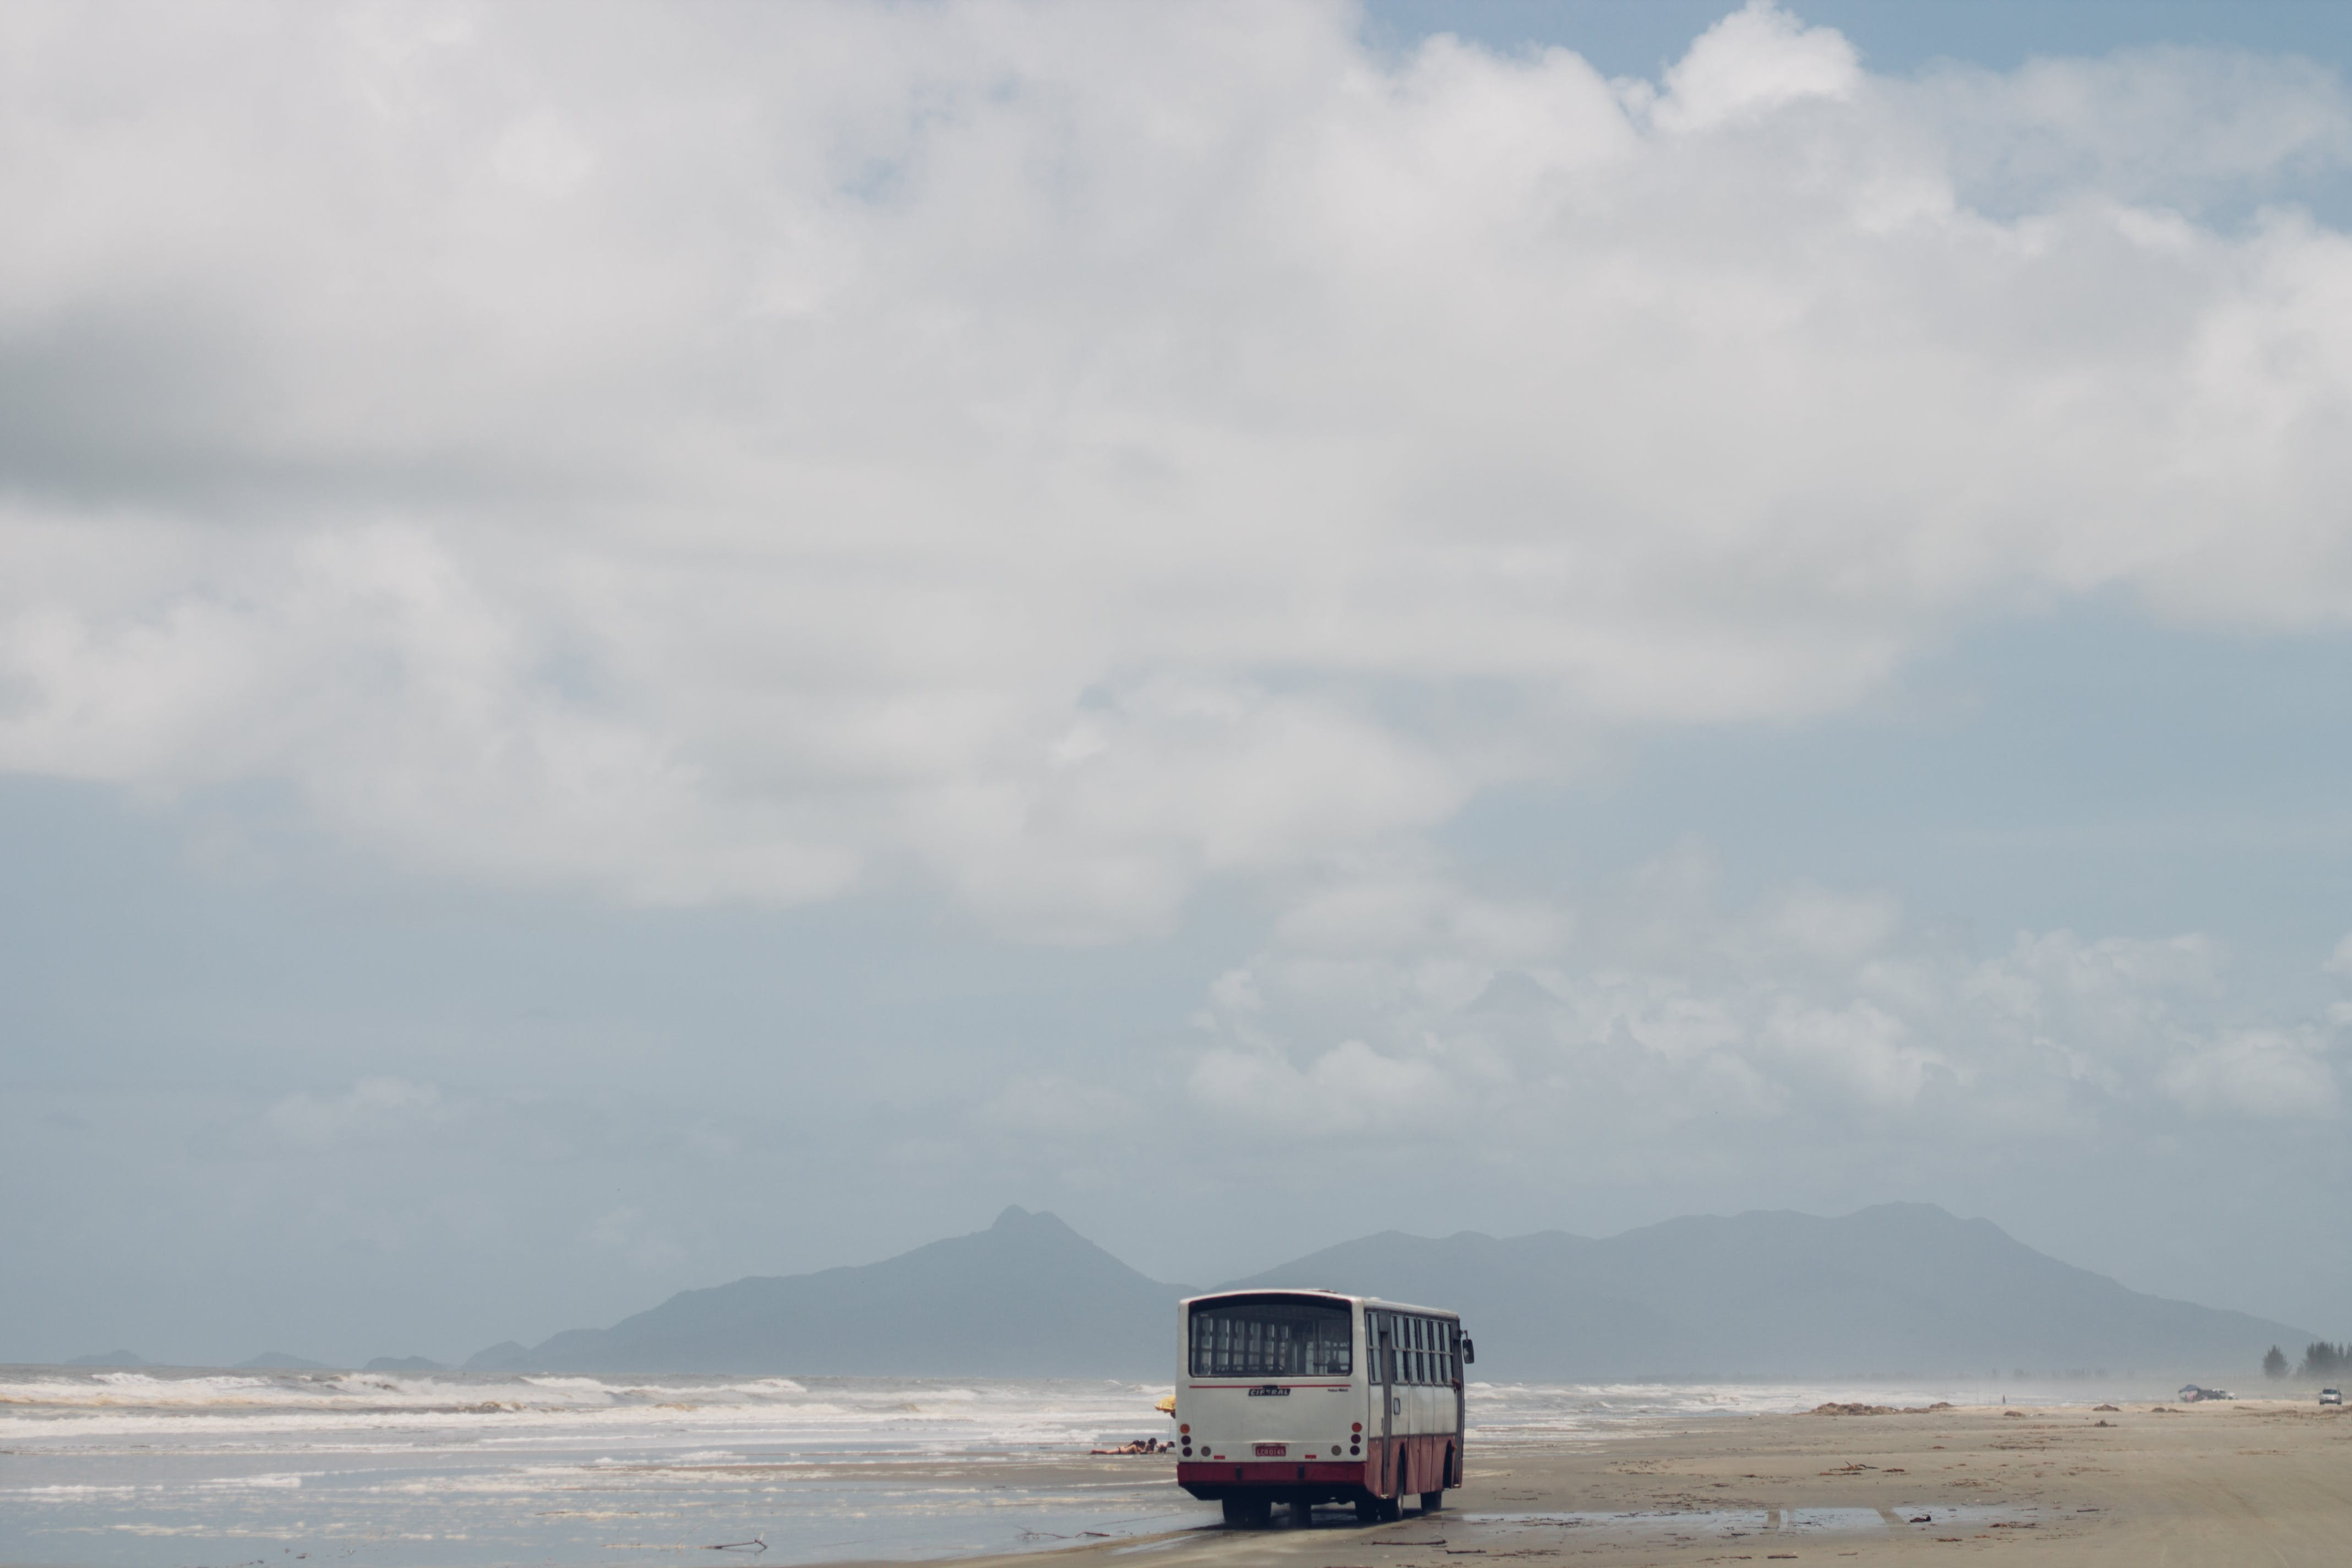 Free stock photo of beach, bus, old bus